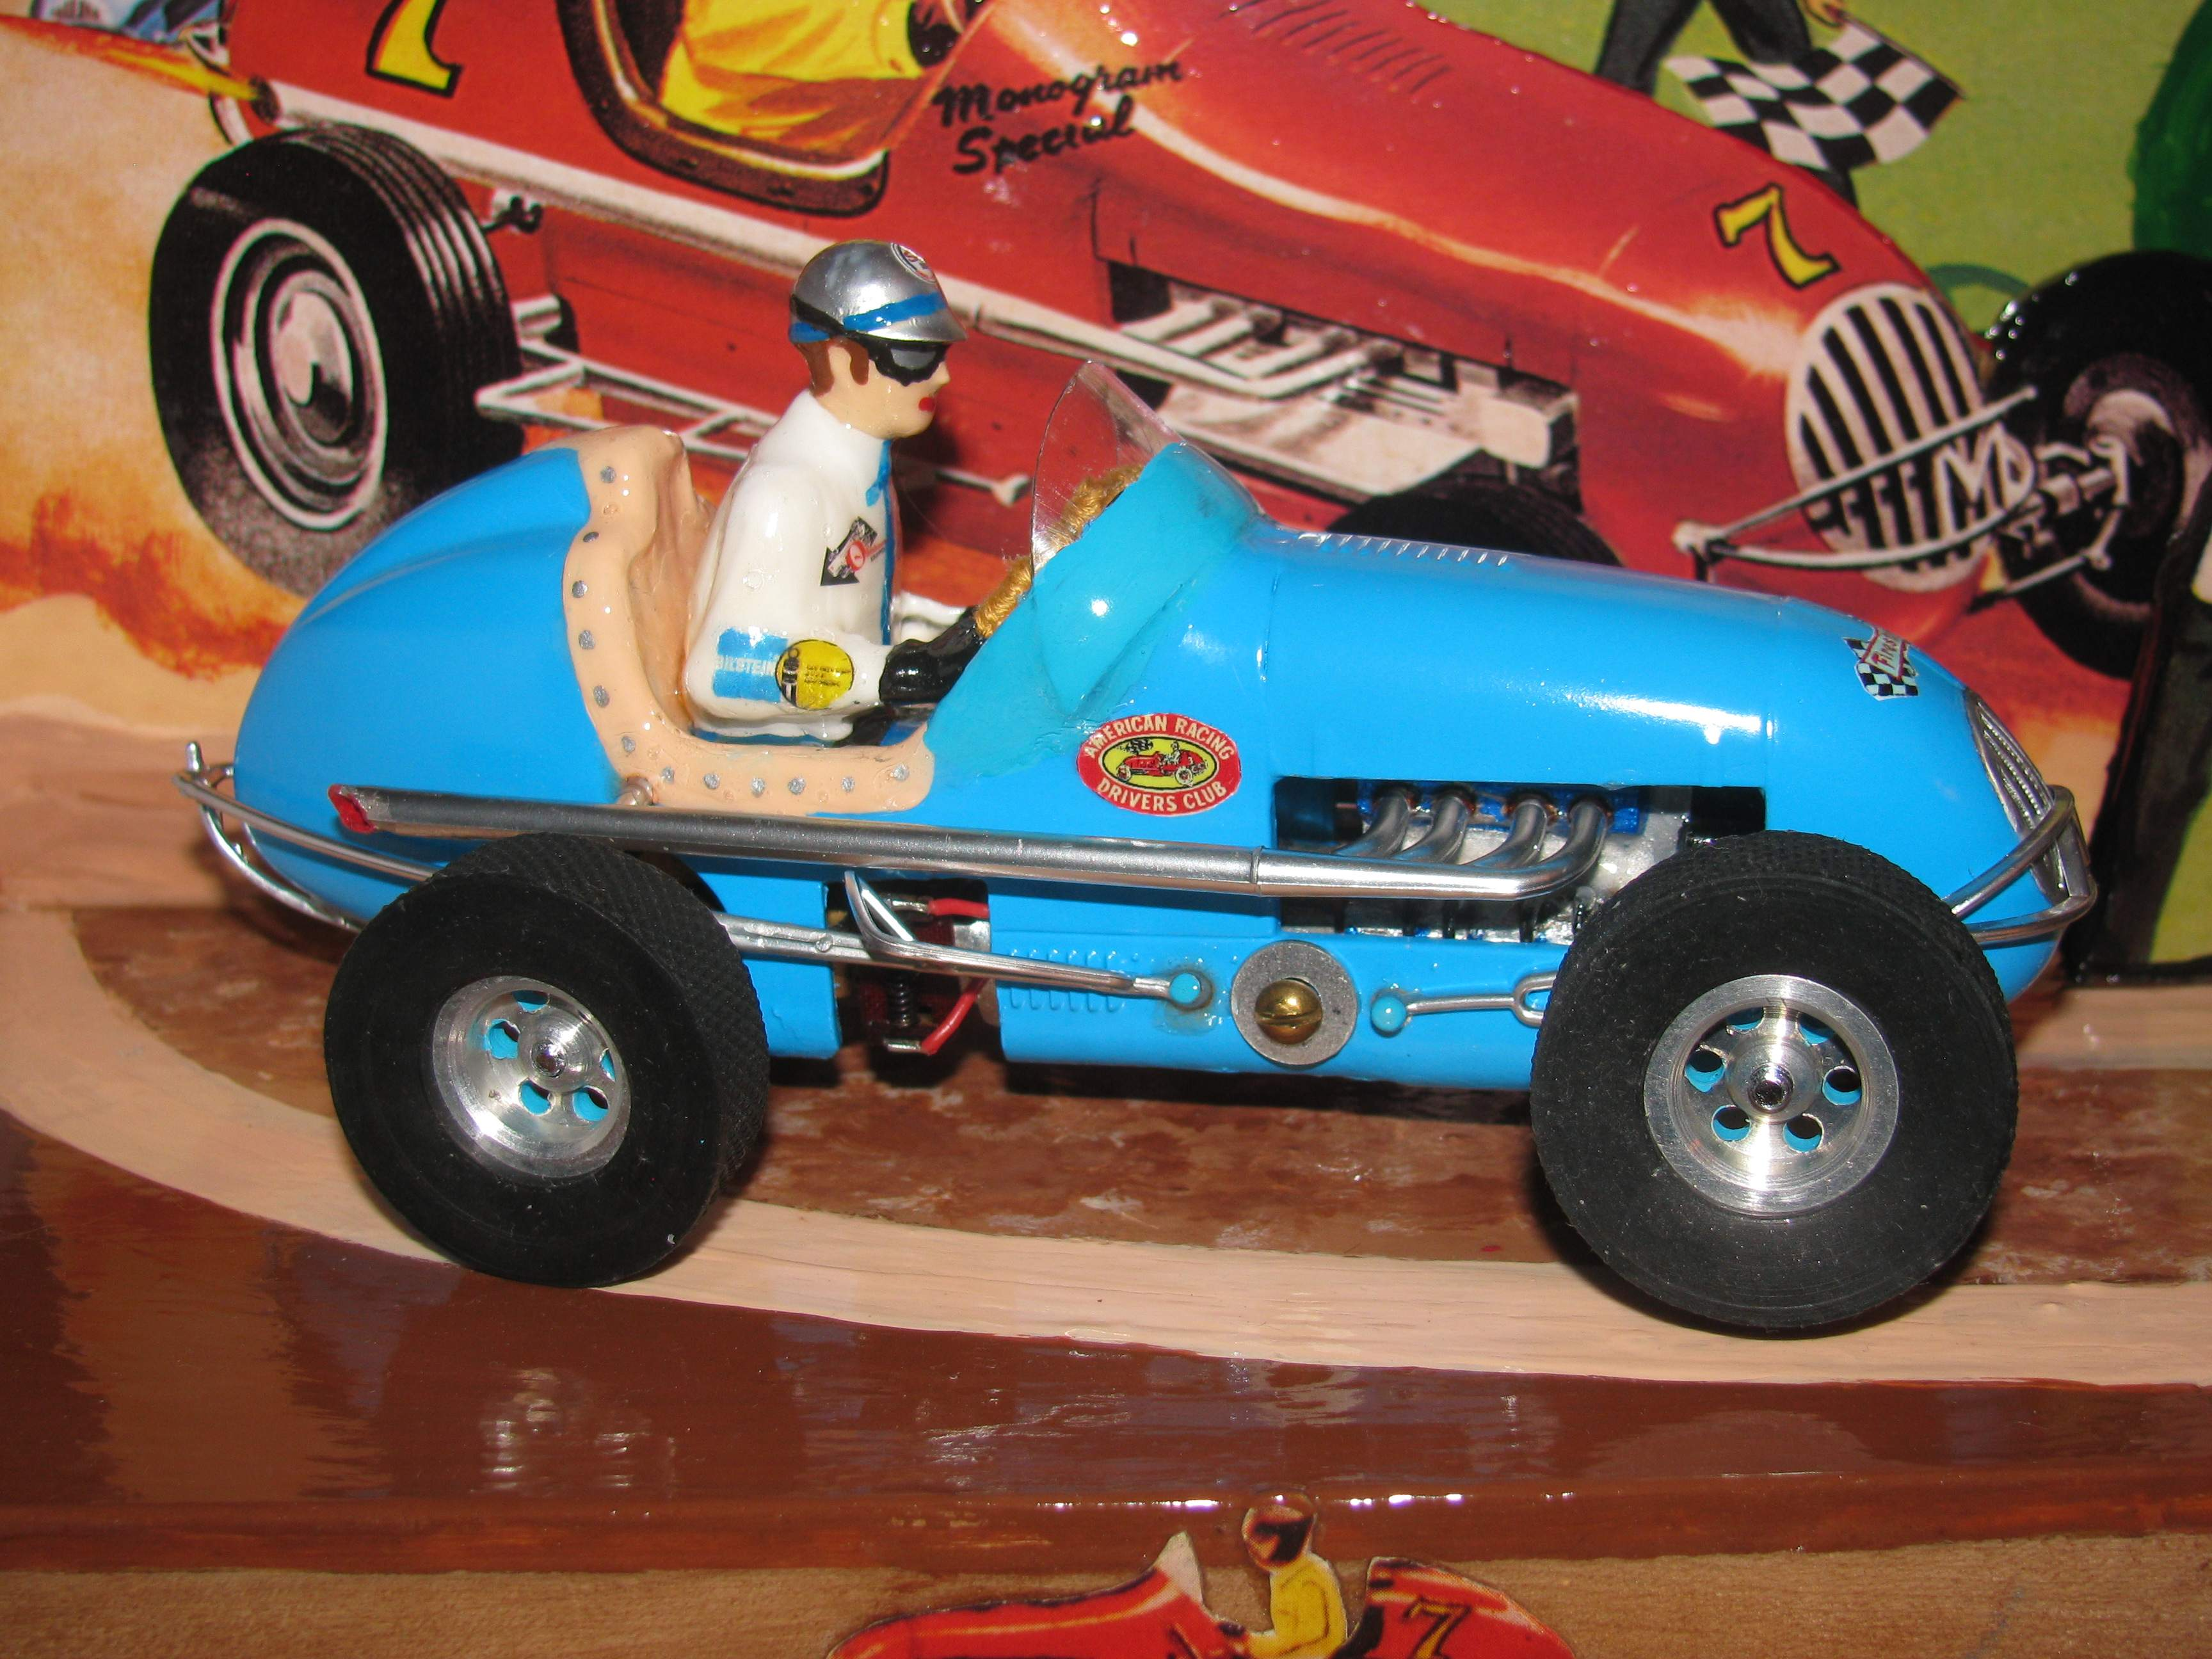 *SOLD* * SPECIAL PRICE FOR CHARLES E. * Monogram Midget Racer in classic Powder Blue